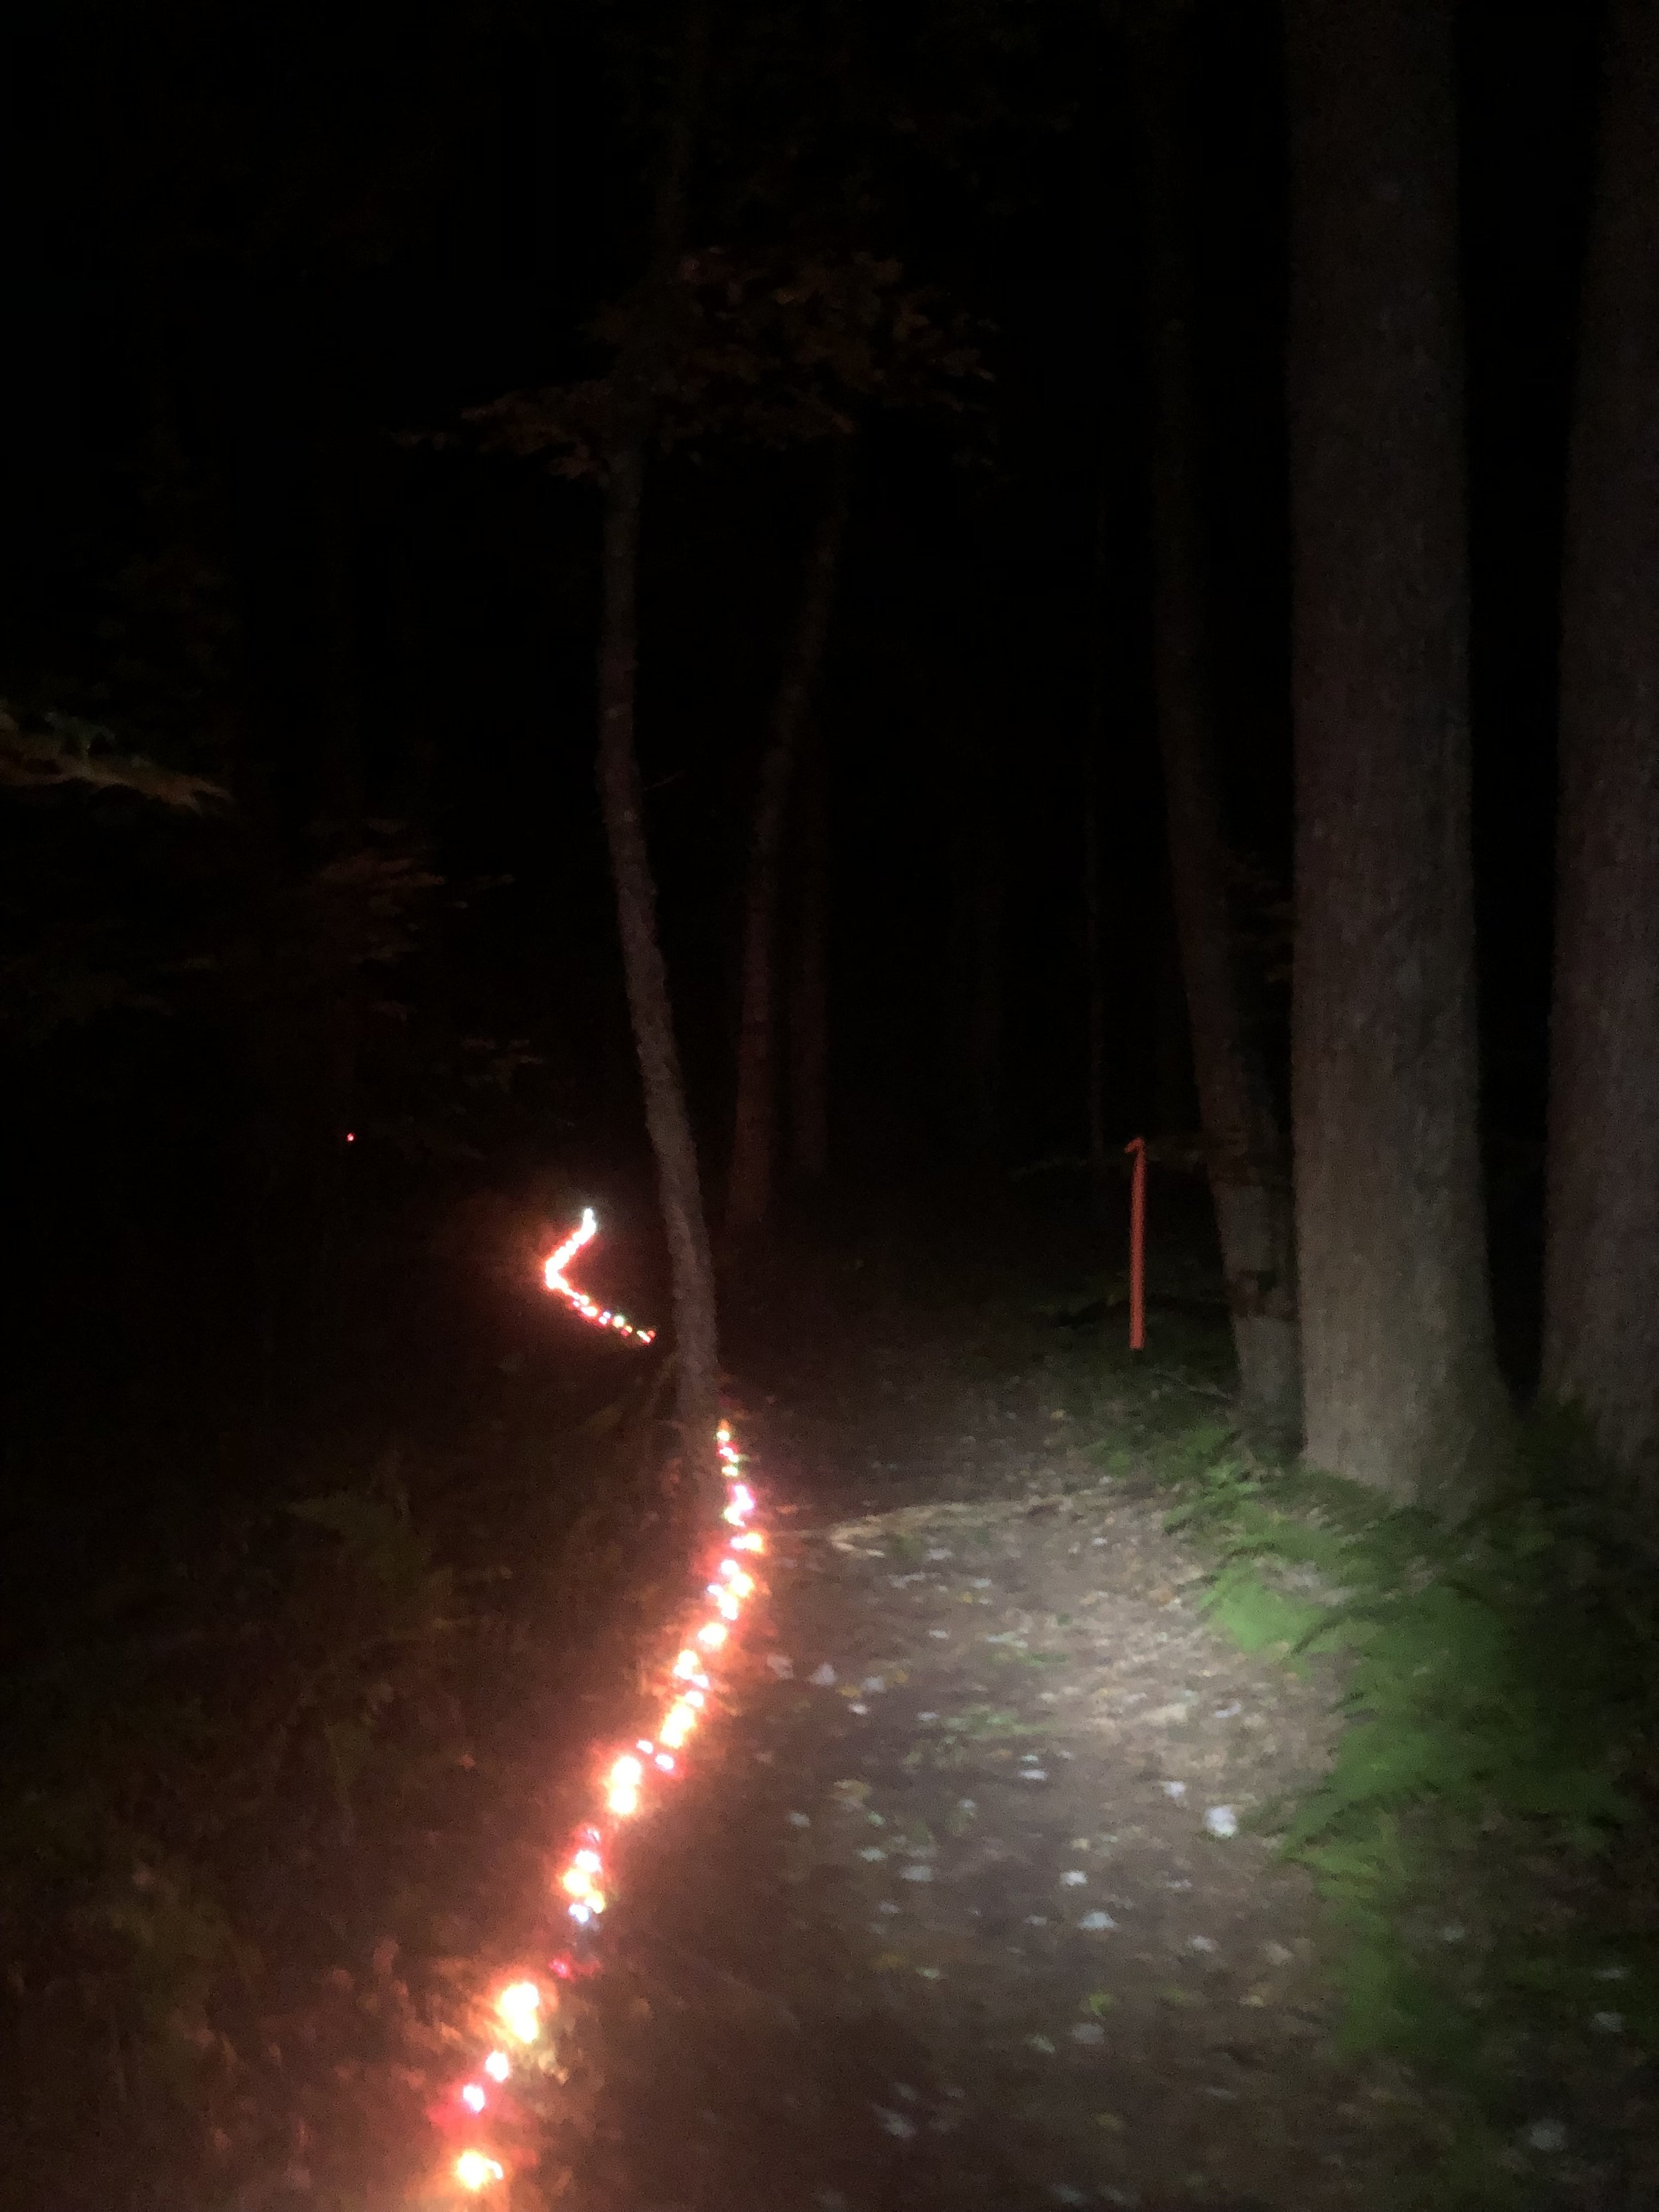 The entire last 40 miles of the course was lit with Christmas tree Lights. Yeah right.